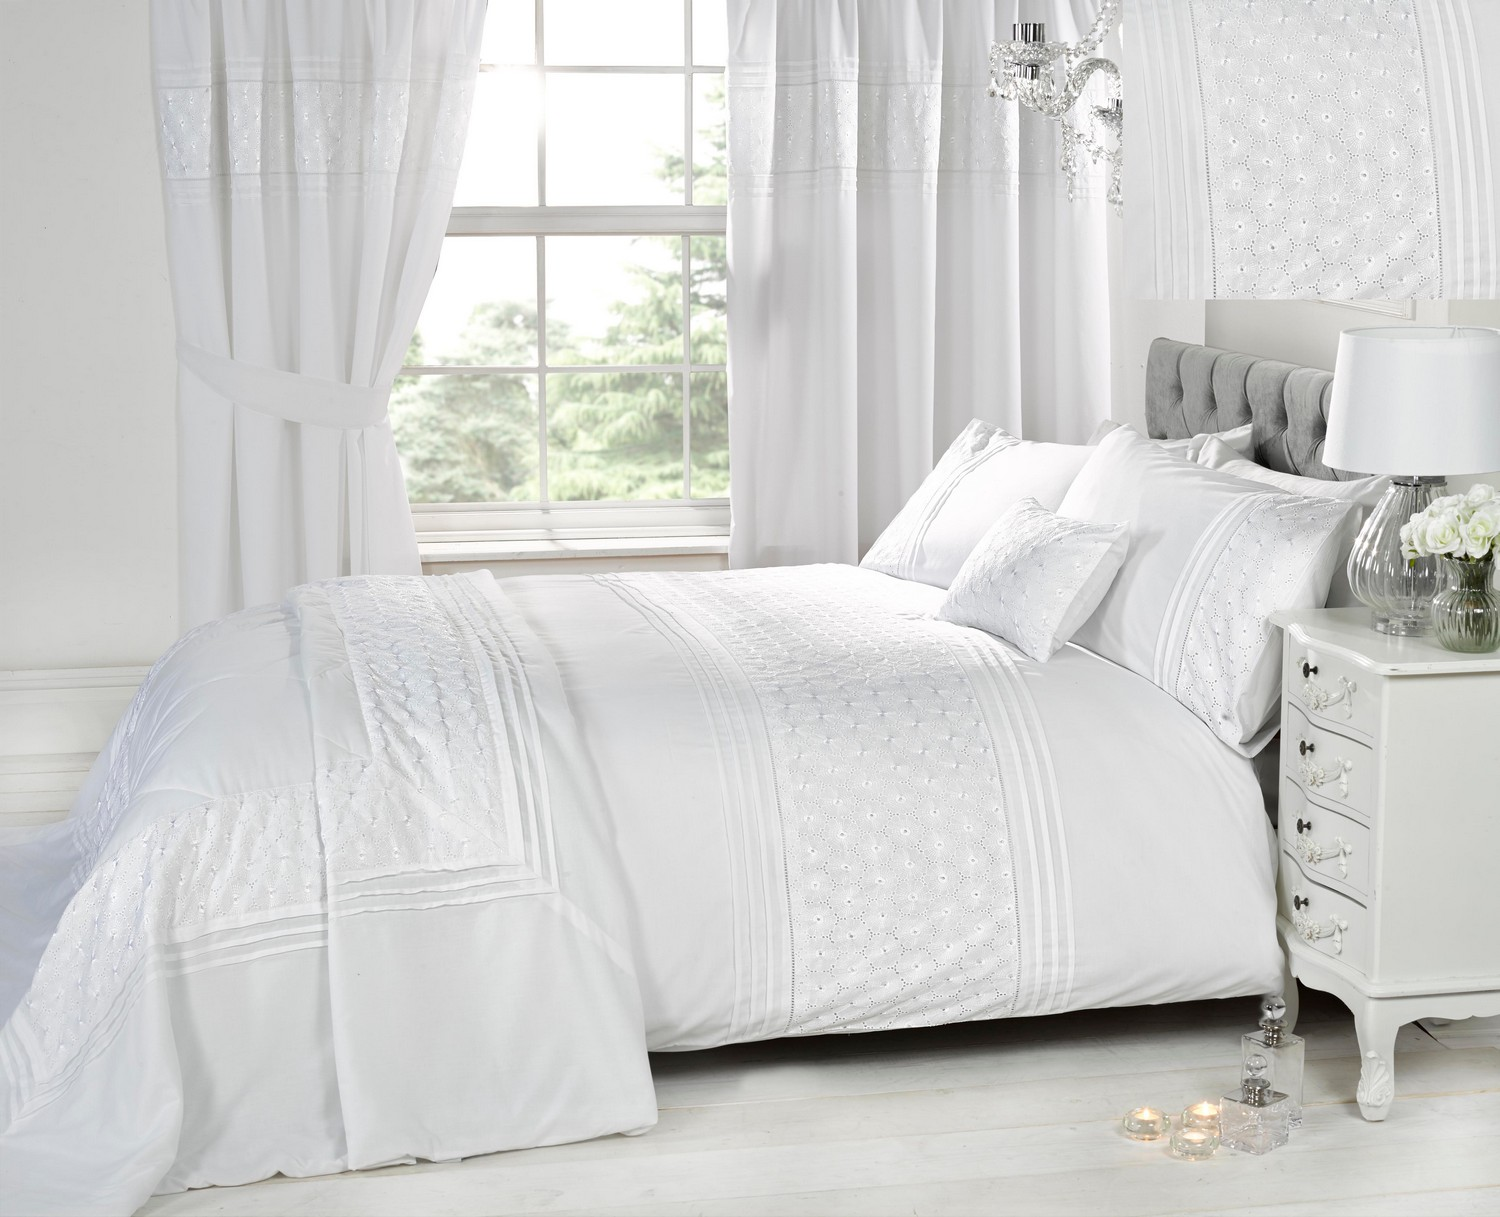 Luxury white bedding bed sets or curtains matching for Cama blanca